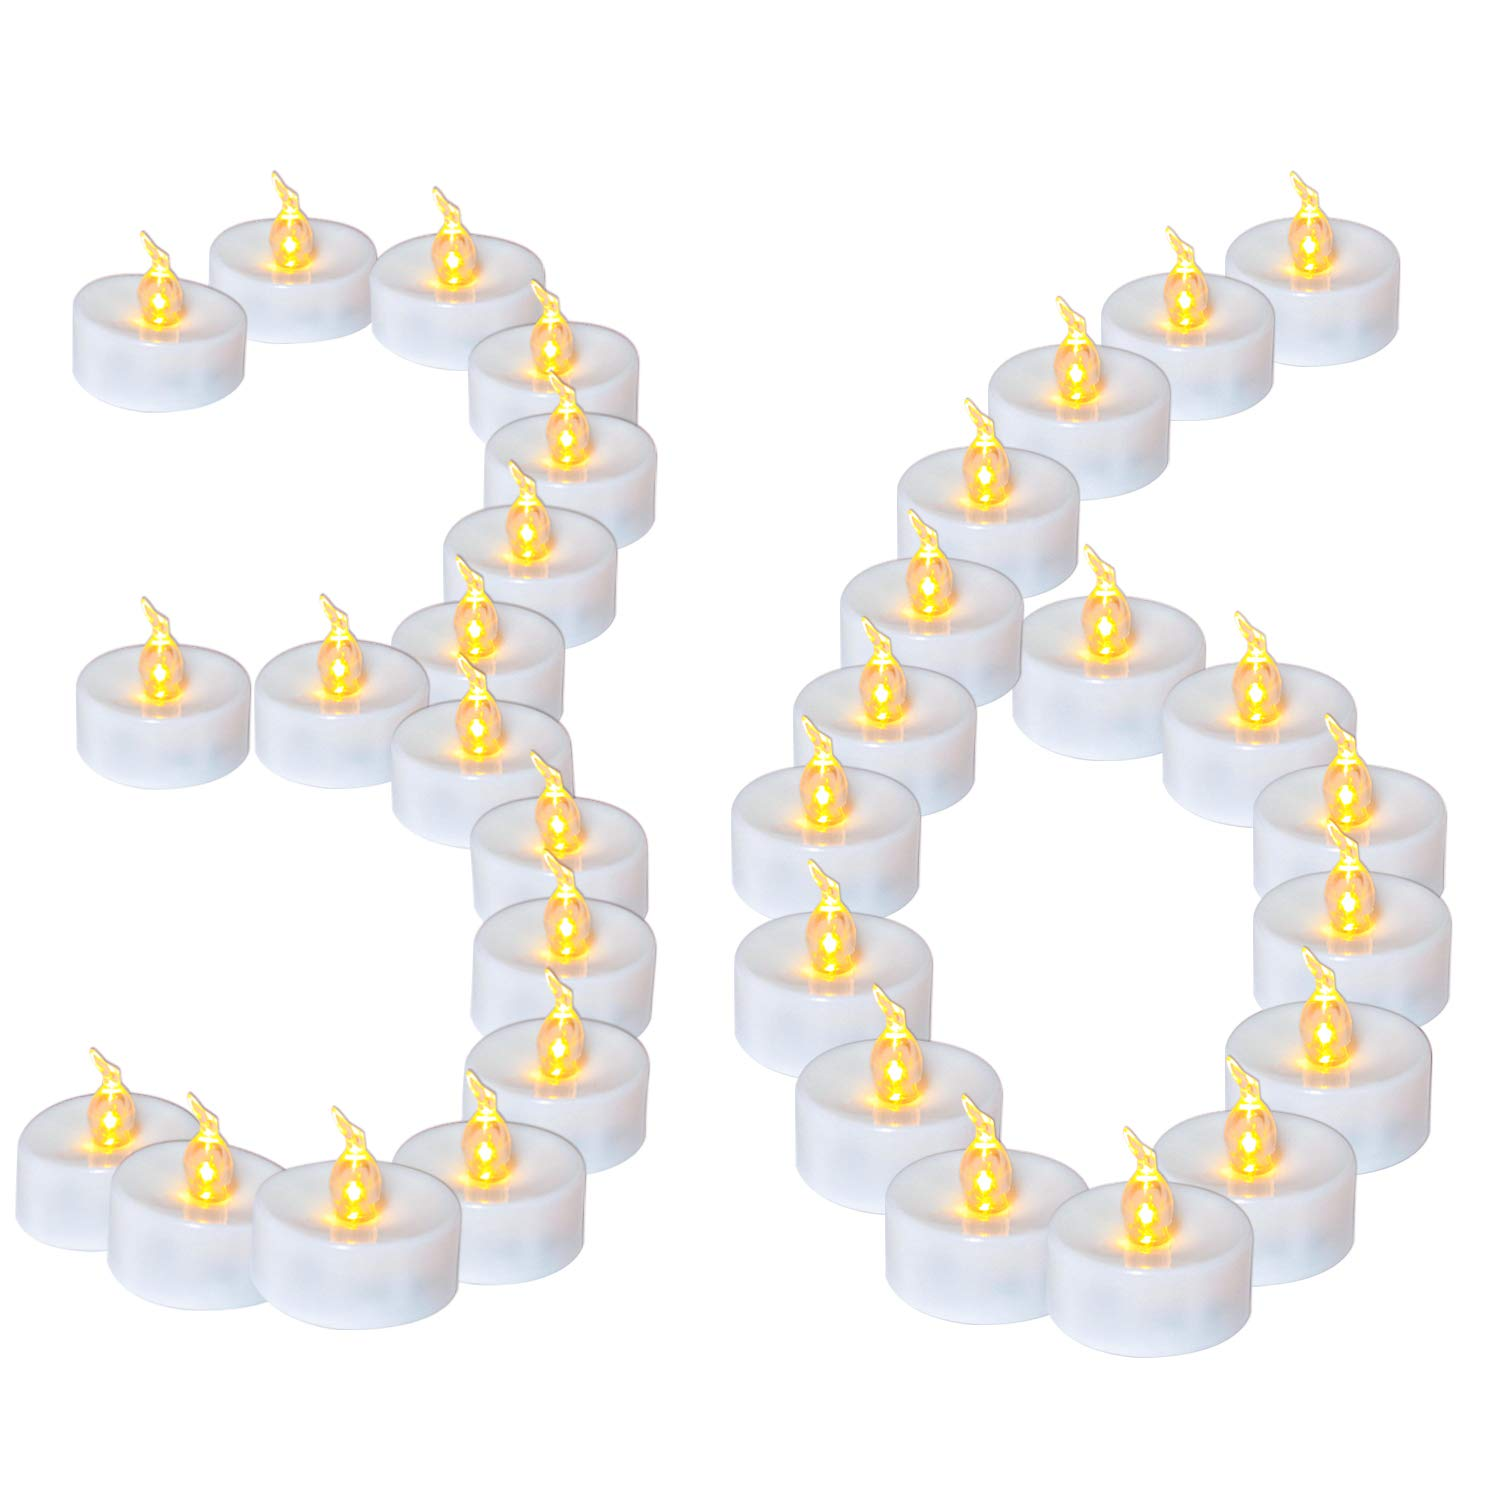 Youngerbaby Set of 36 Small Led Tealight Candles Bulk with Time Function(6Hrs ON 18Hrs Off)-Battery Operated Tea Lights Flickering Warm White Glow Fake Candles for Holiday Wedding Party Halloween